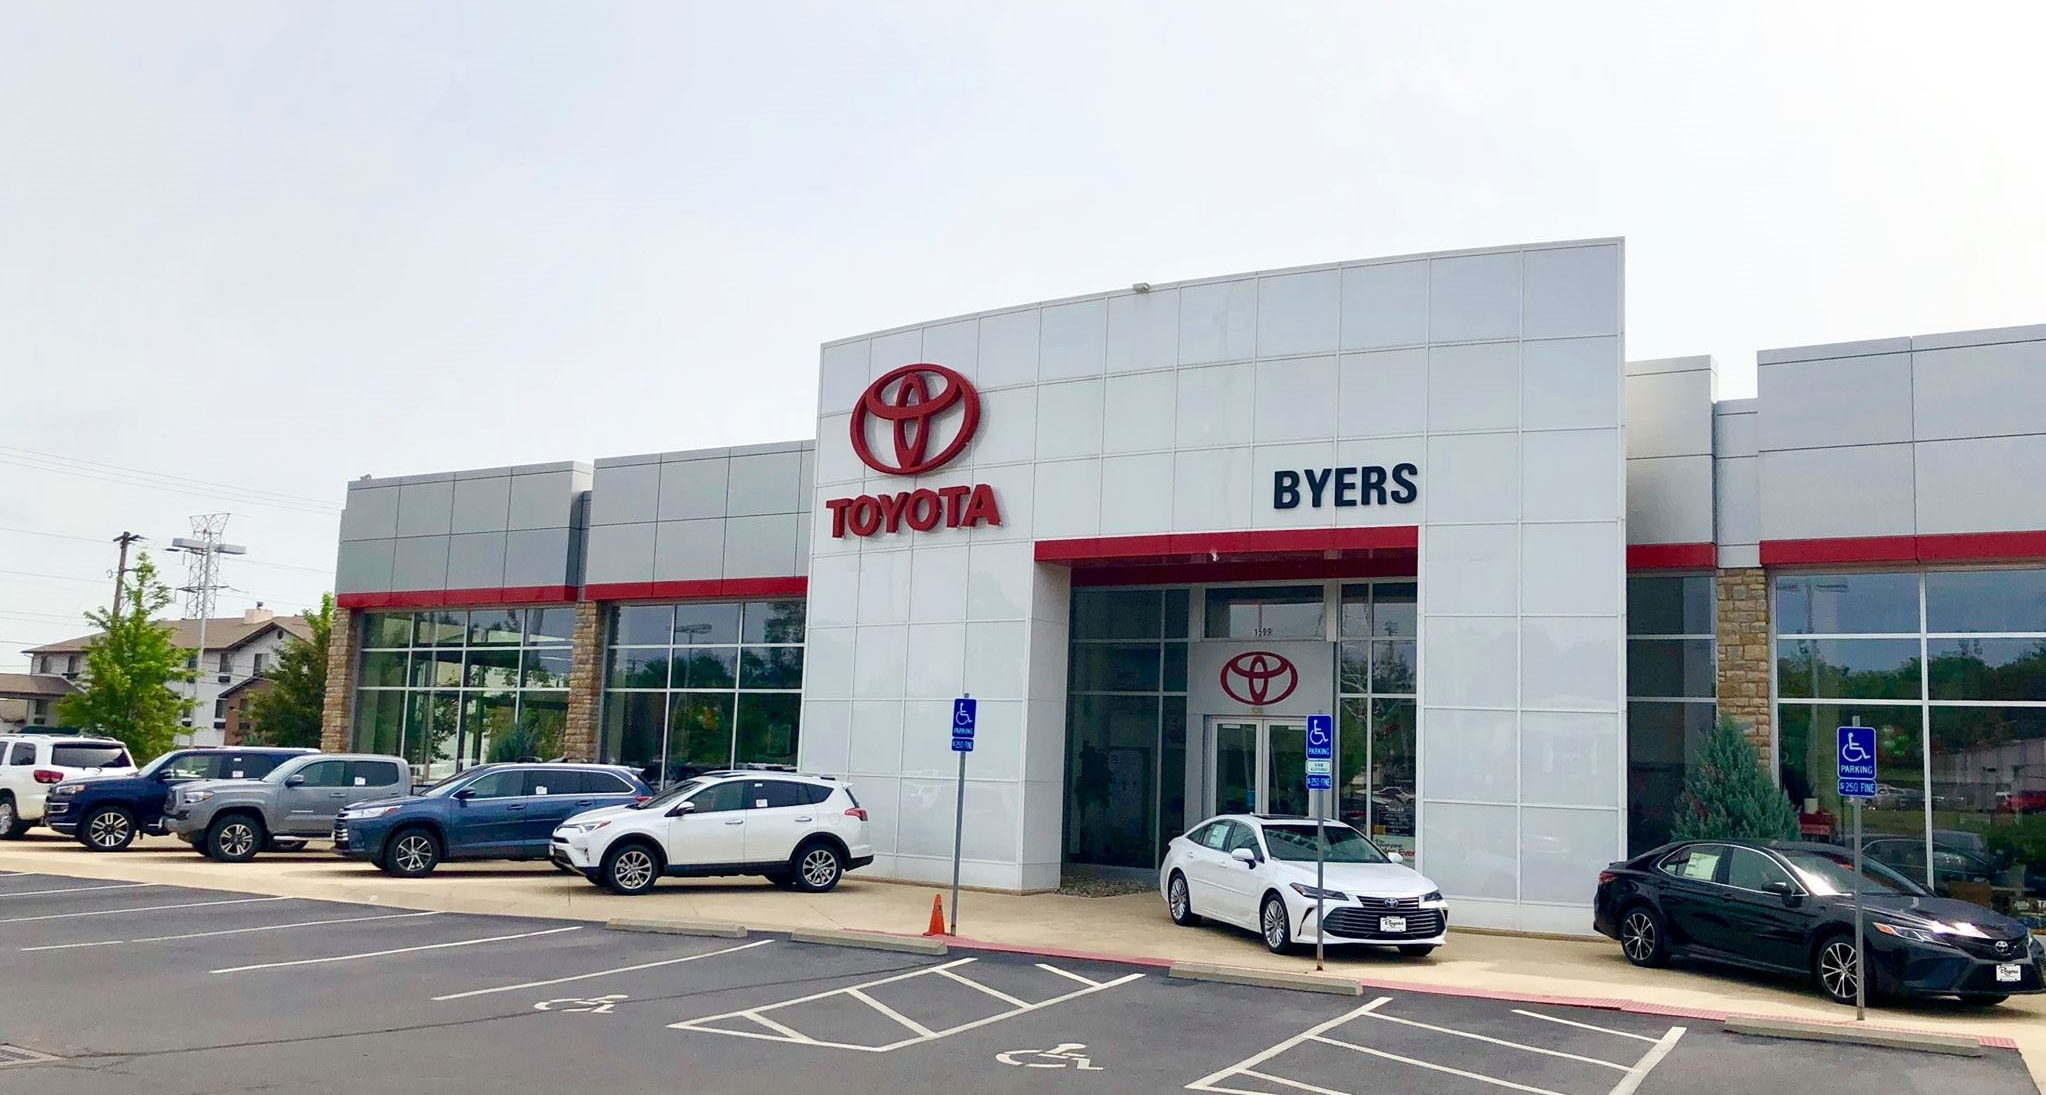 Toyota Dealership Dayton Ohio >> Byers Toyota Toyota Dealer Serving Columbus Oh